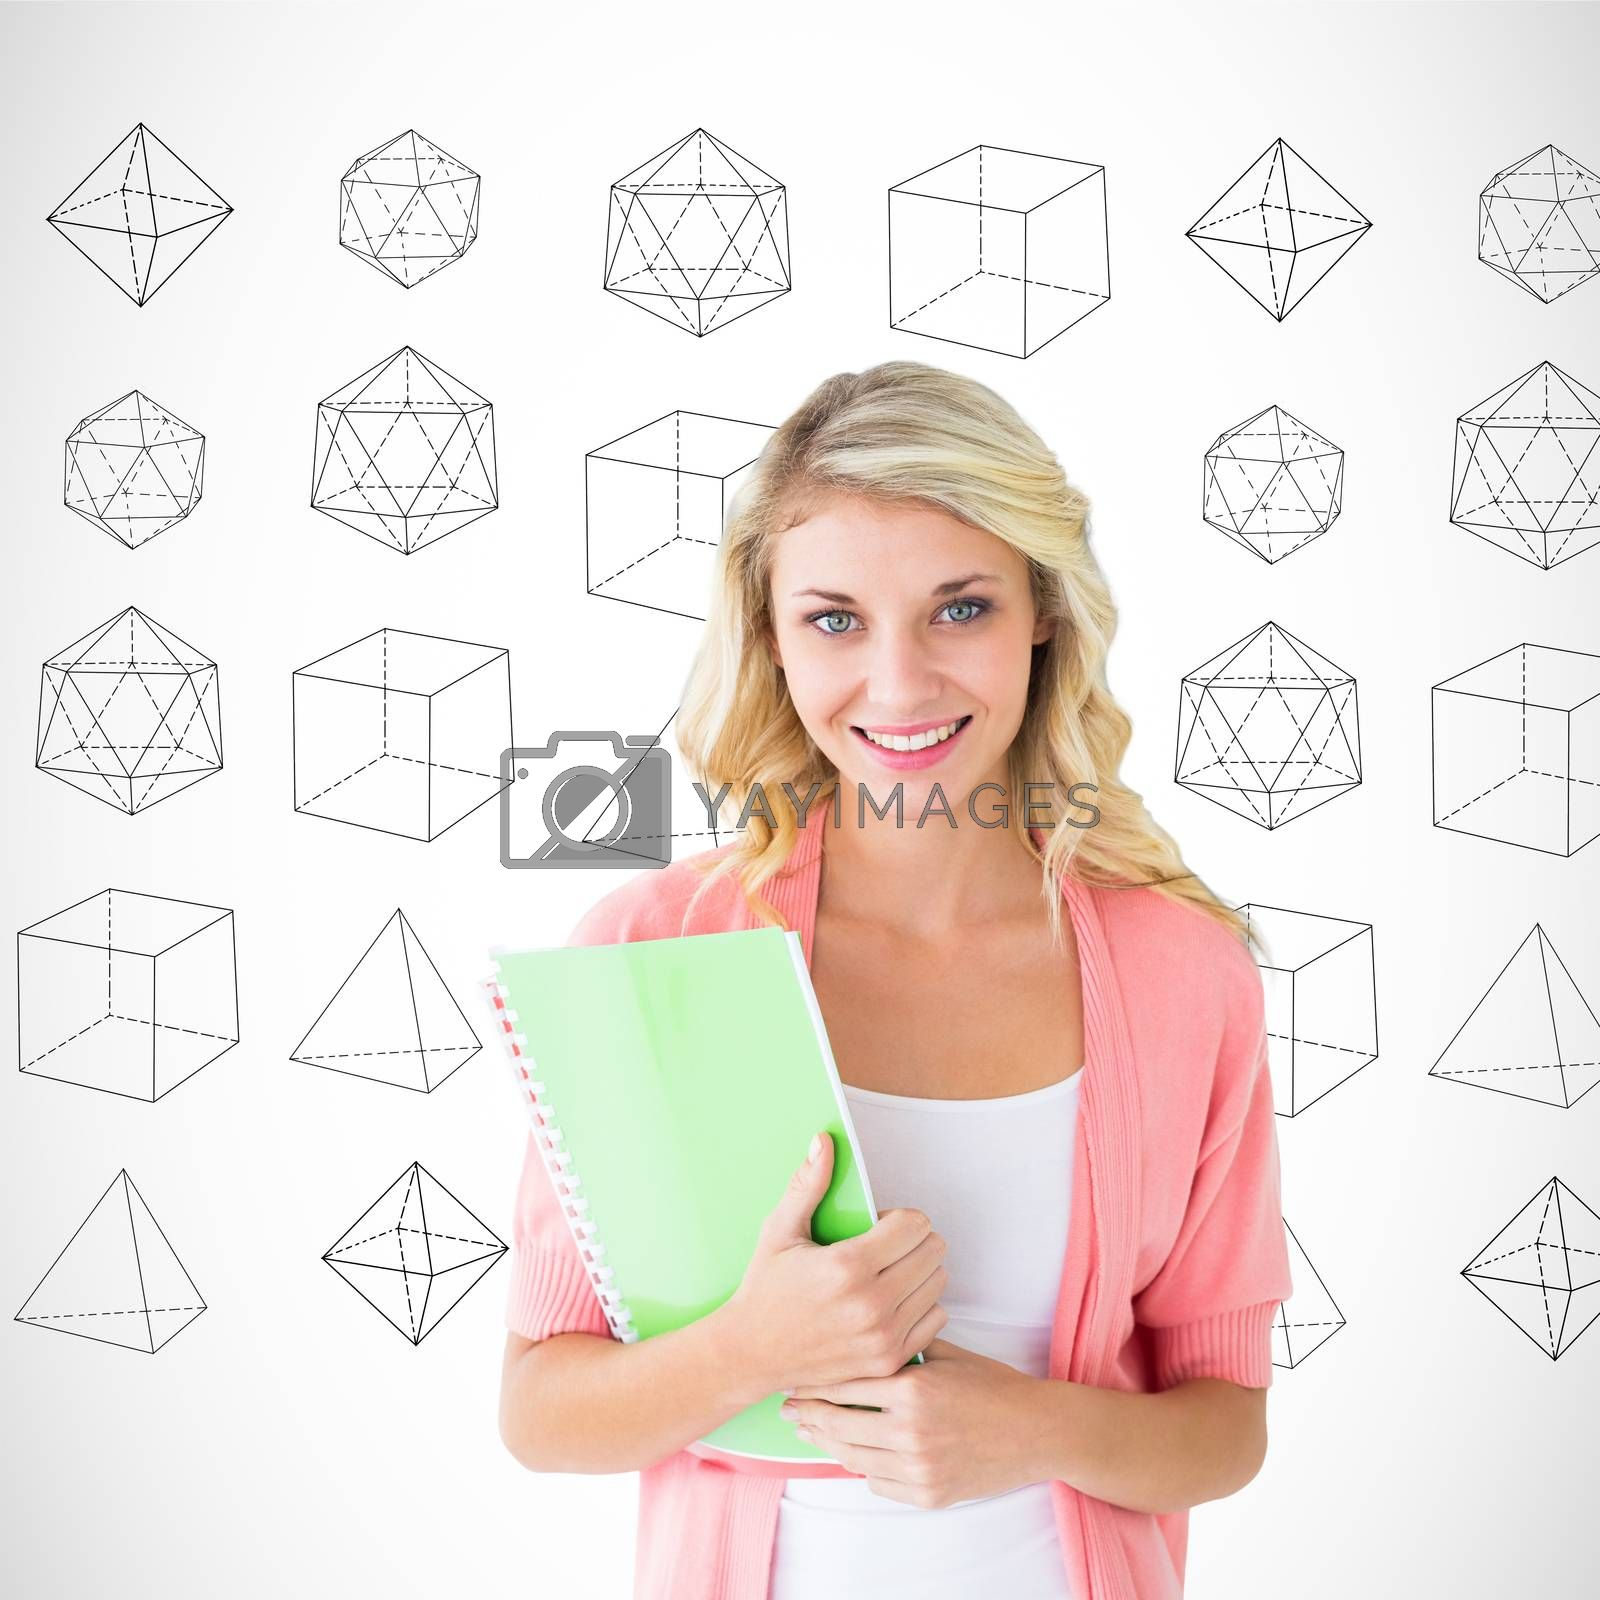 Composite image of young pretty student smiling by Wavebreakmedia